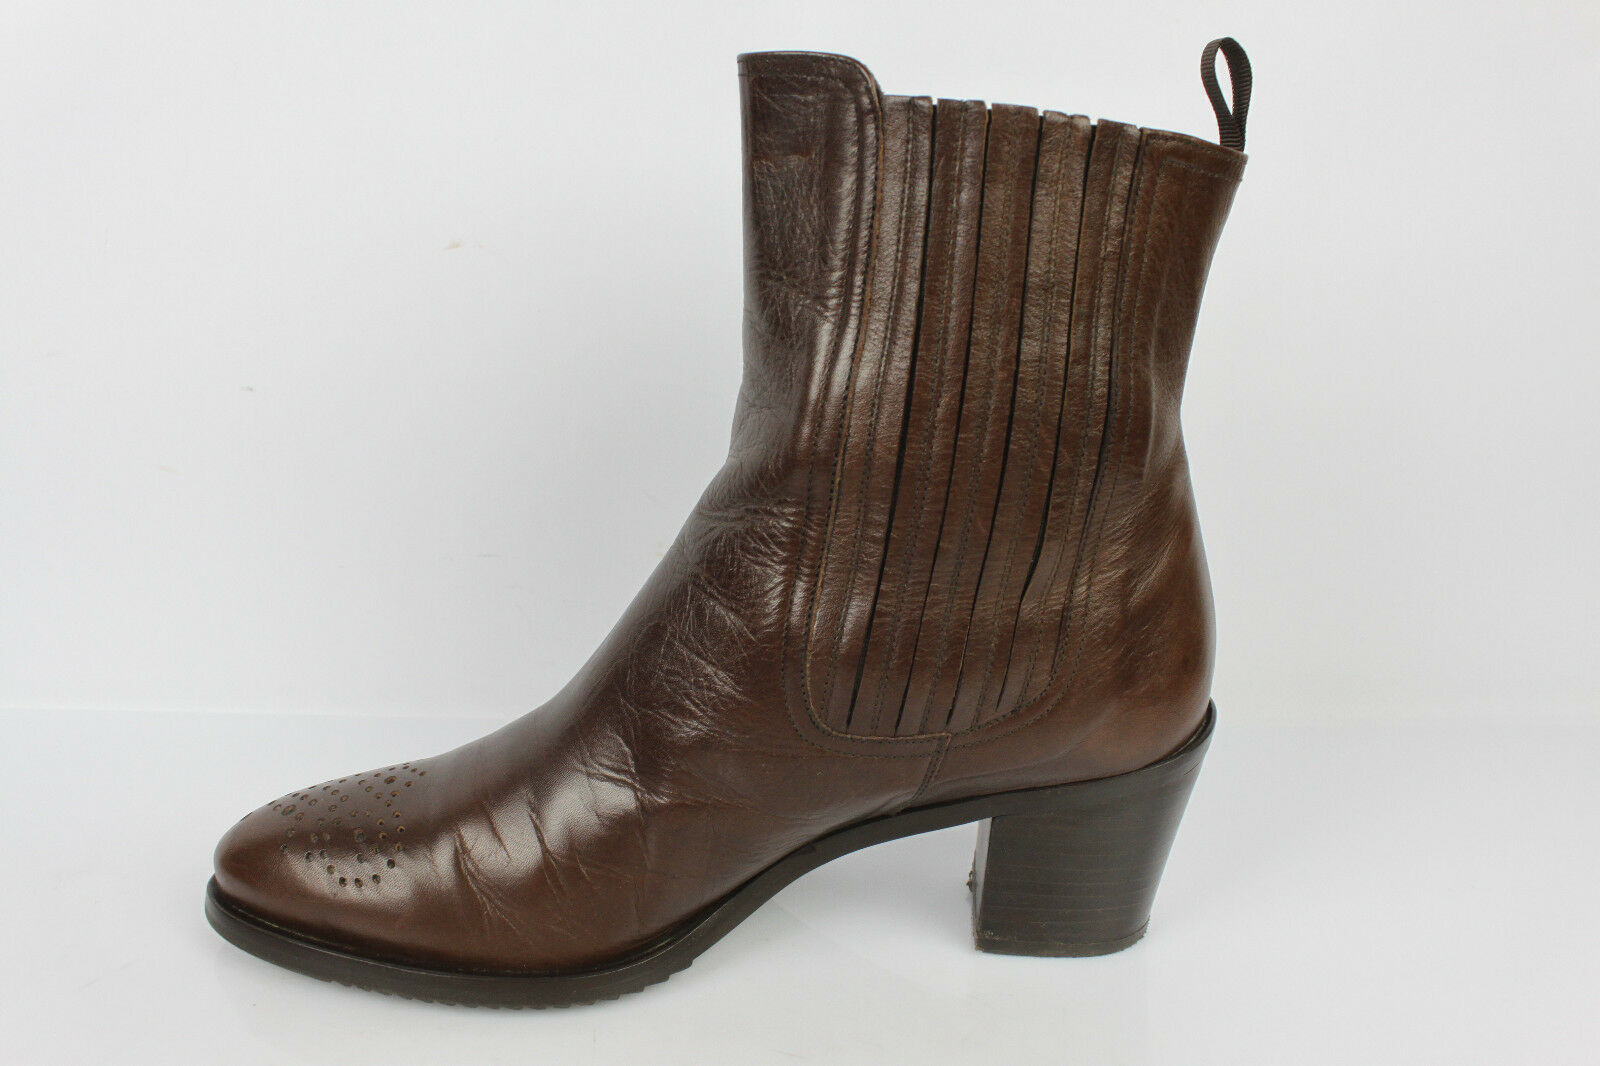 Bottines Boots ZINDA T Cuir Marron T ZINDA 37 TBE 496c72